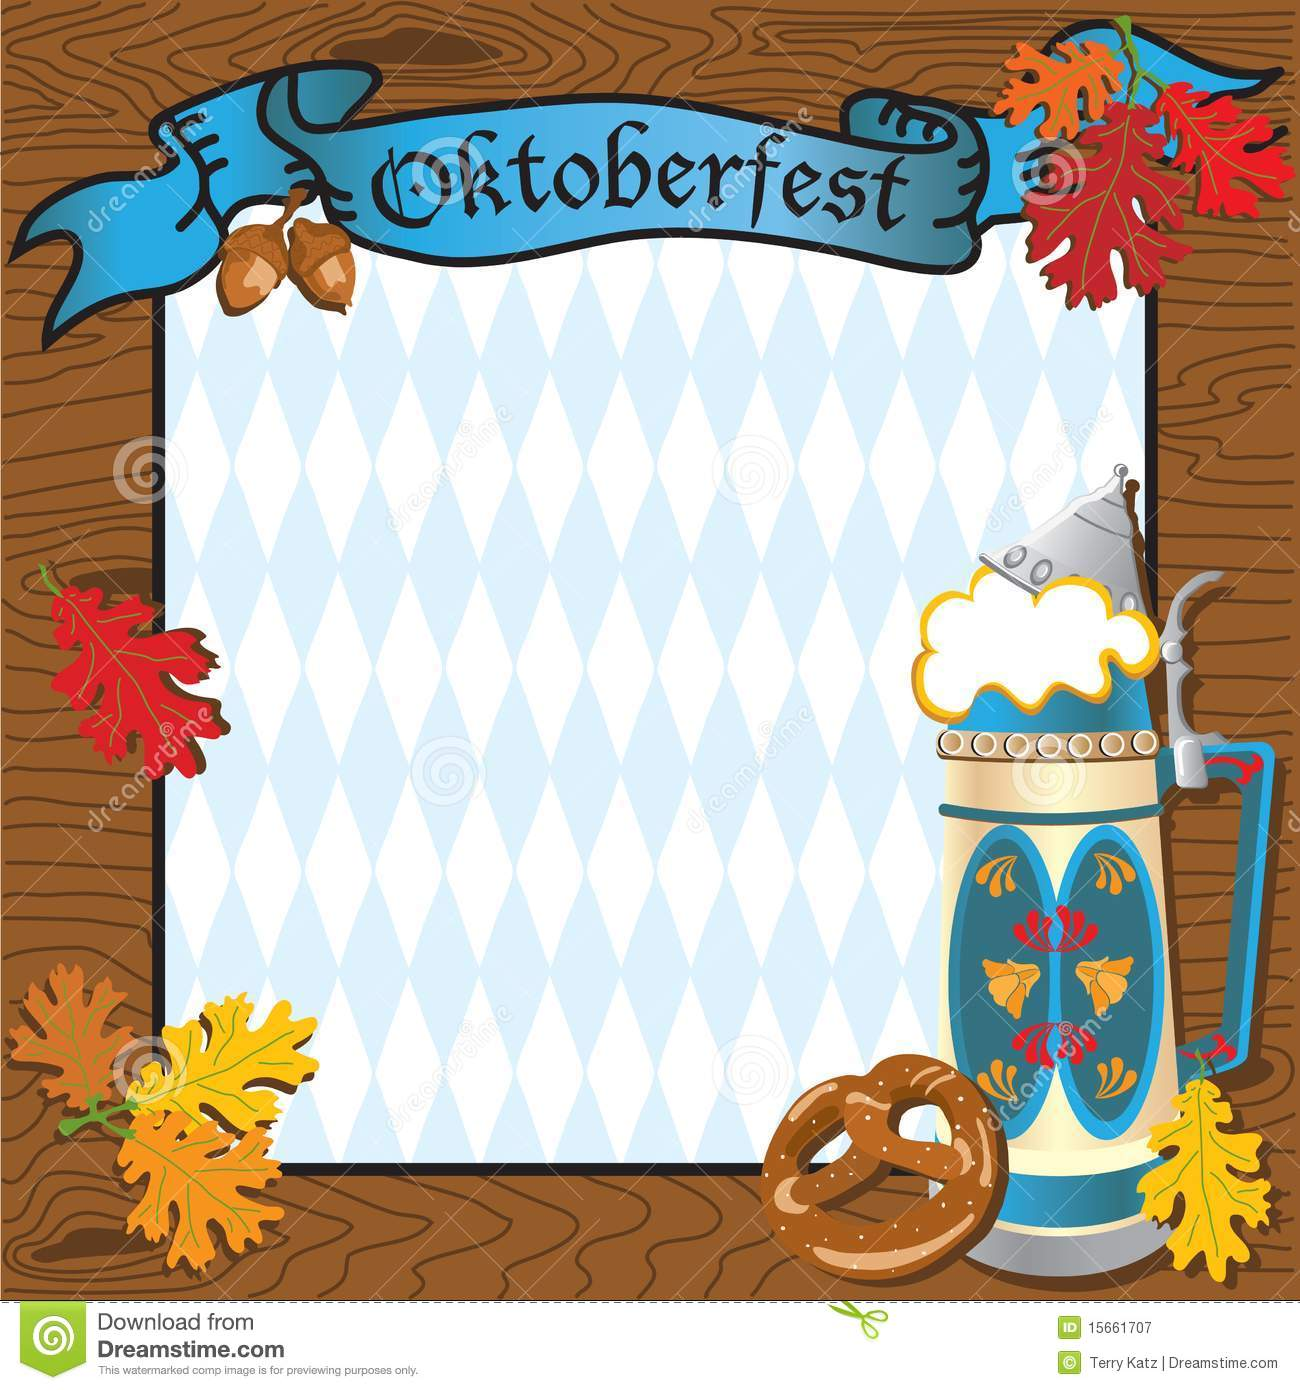 oktoberfest party invitation editorial photography - image: 15661707, Einladungen